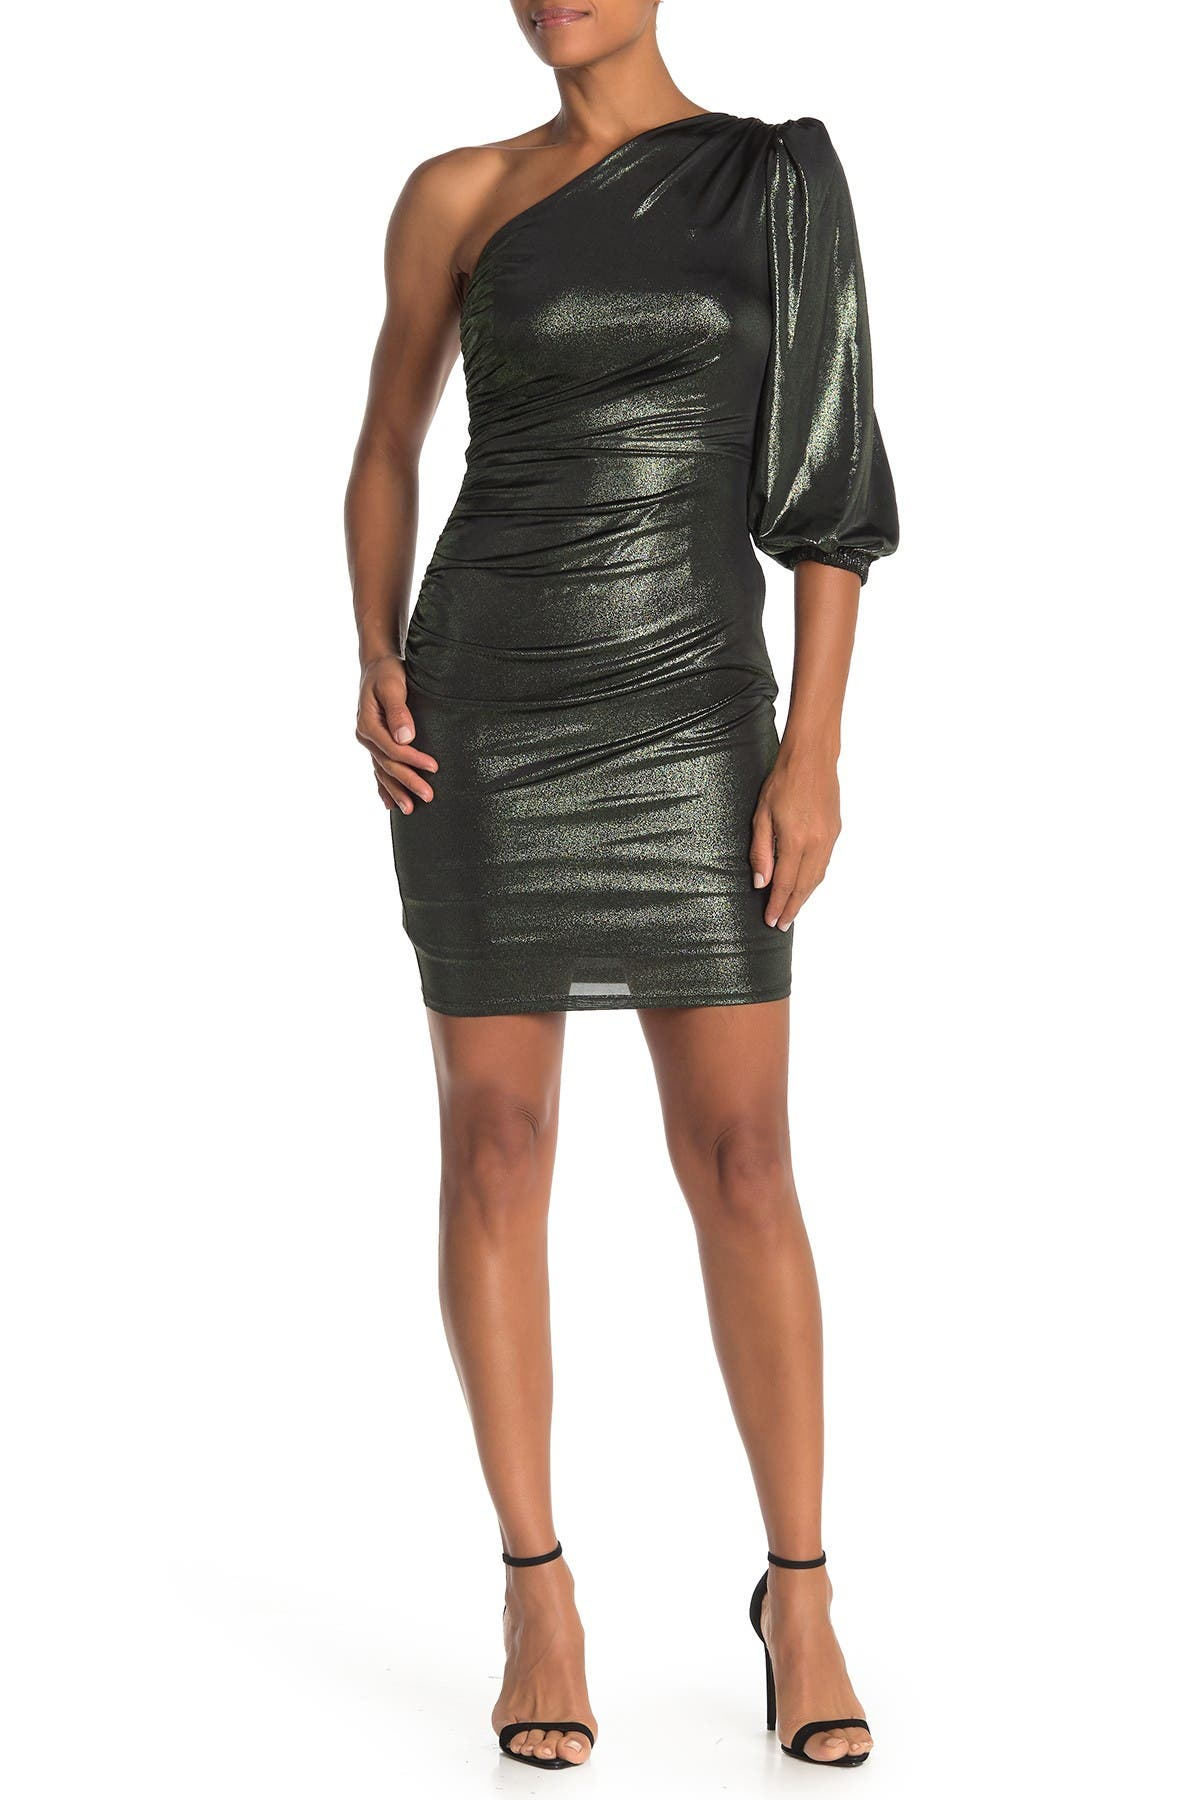 Image of Donna Morgan One Shoulder Stretch Metallic Dress